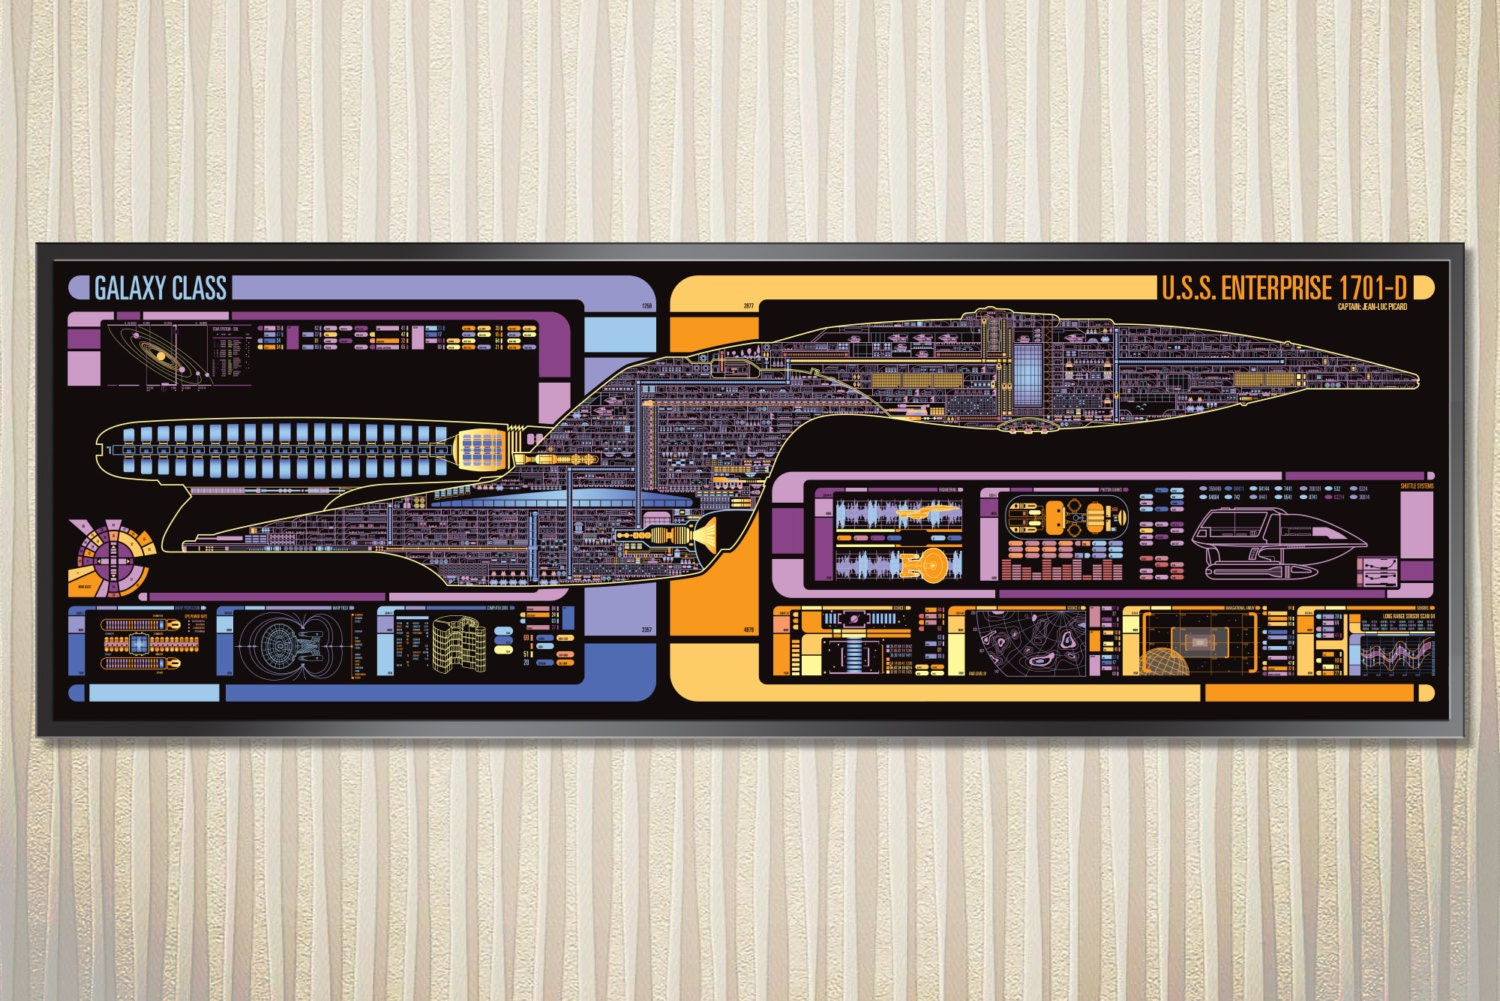 Uss Enterprise Galaxy Class Starship Lcars Poster